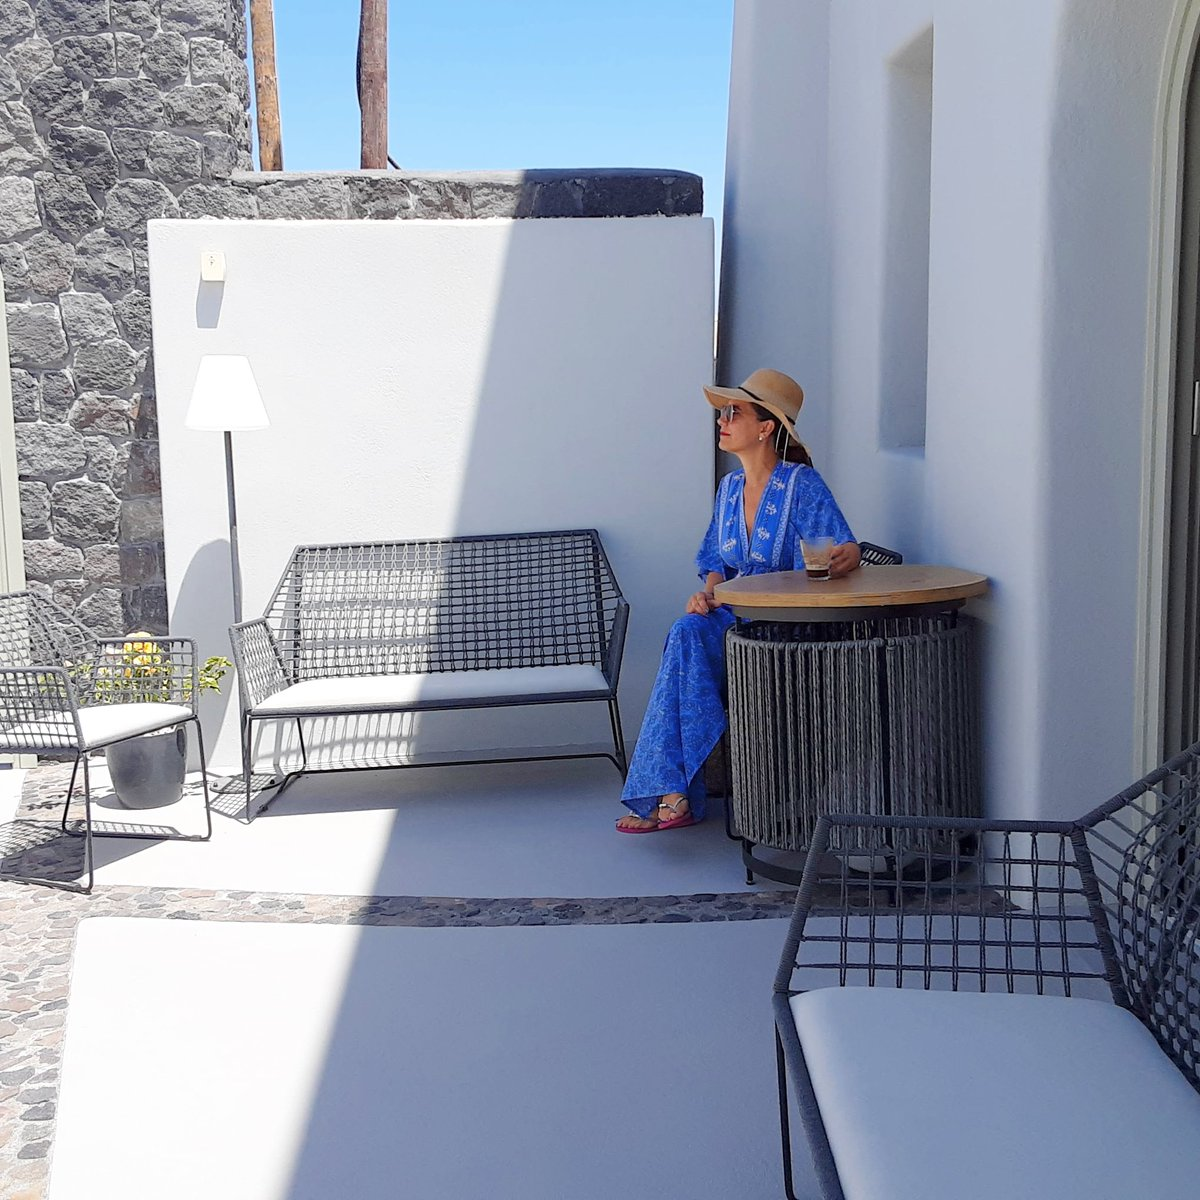 Enjoying the cool of the shade 😎  #kallosimarhotel #santorini #hotel #greece #besthotels #shade #sun #lounging #relaxation #summer #blue #architecture #design